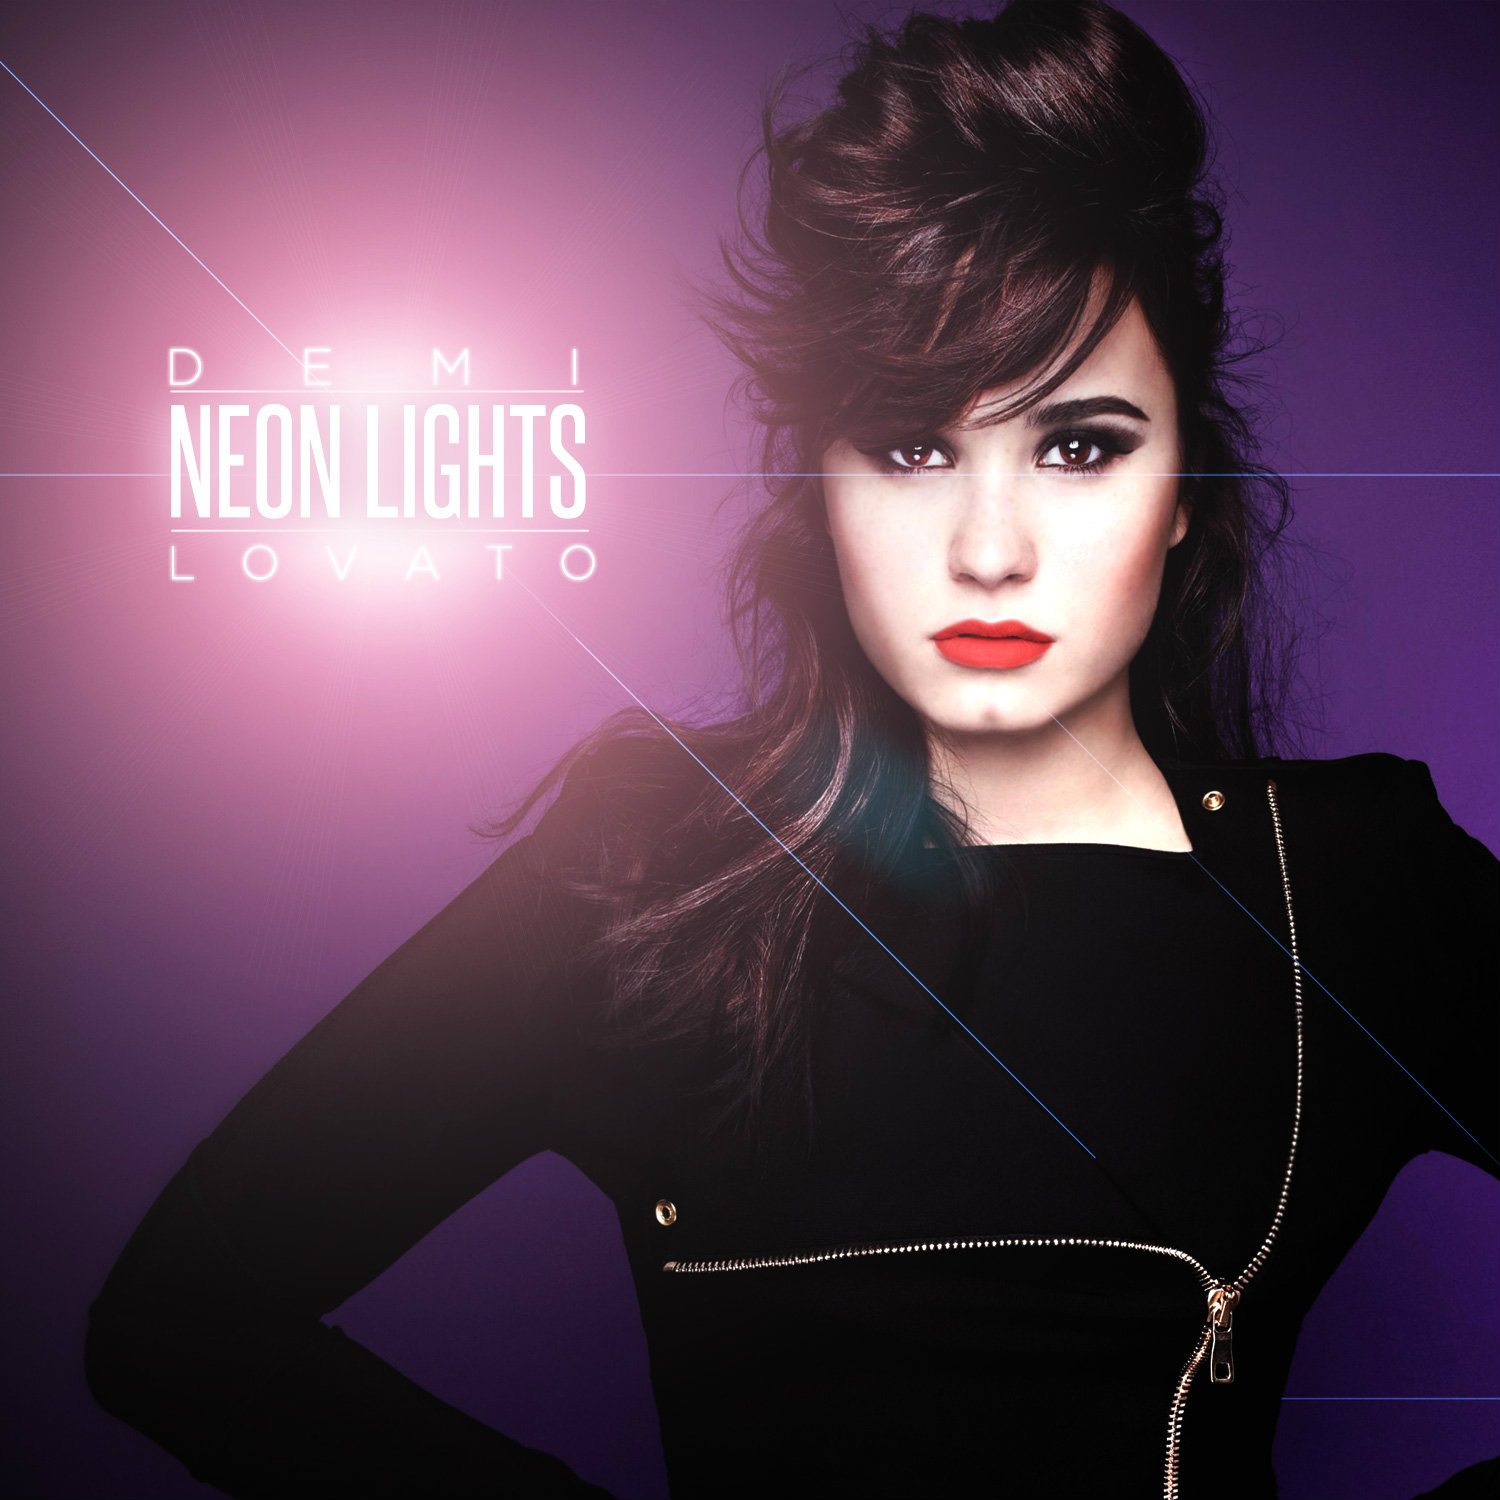 Demi Lovato Wallpaper: Icons, Wallpapers And Photos On Fanpop